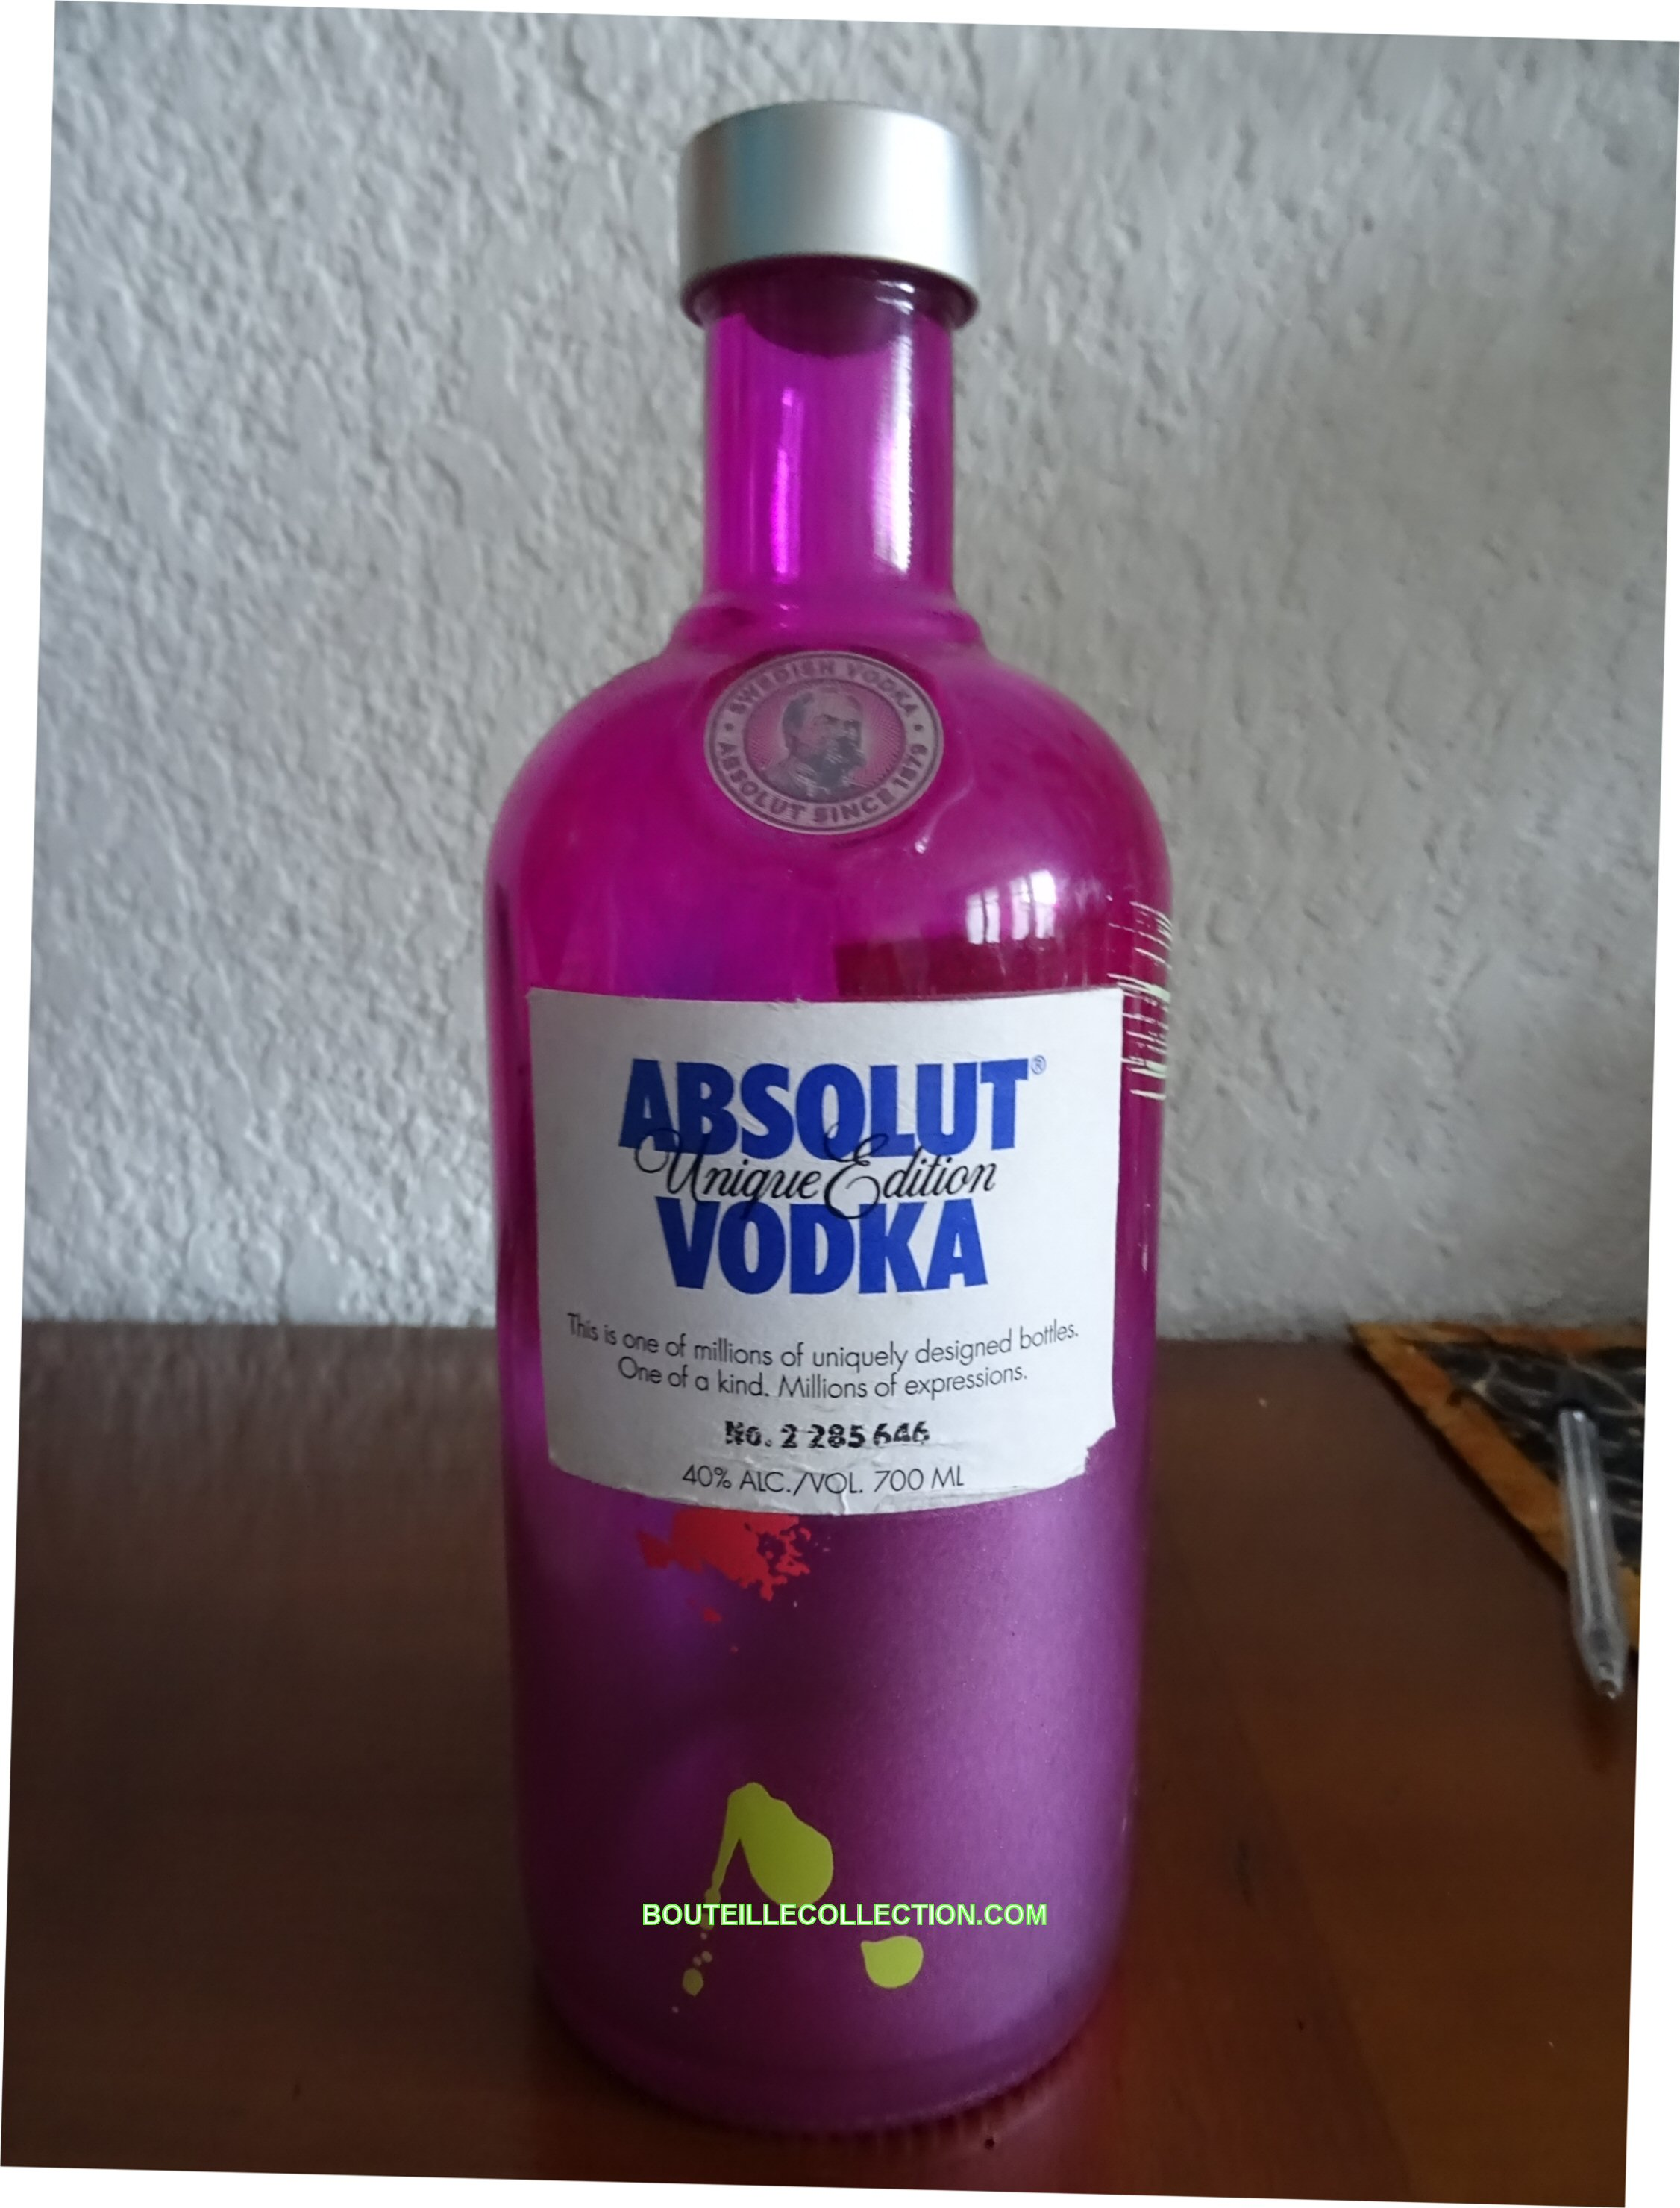 ABSOLUT UNIQUE EDITION 70CL HA 646 .JPG